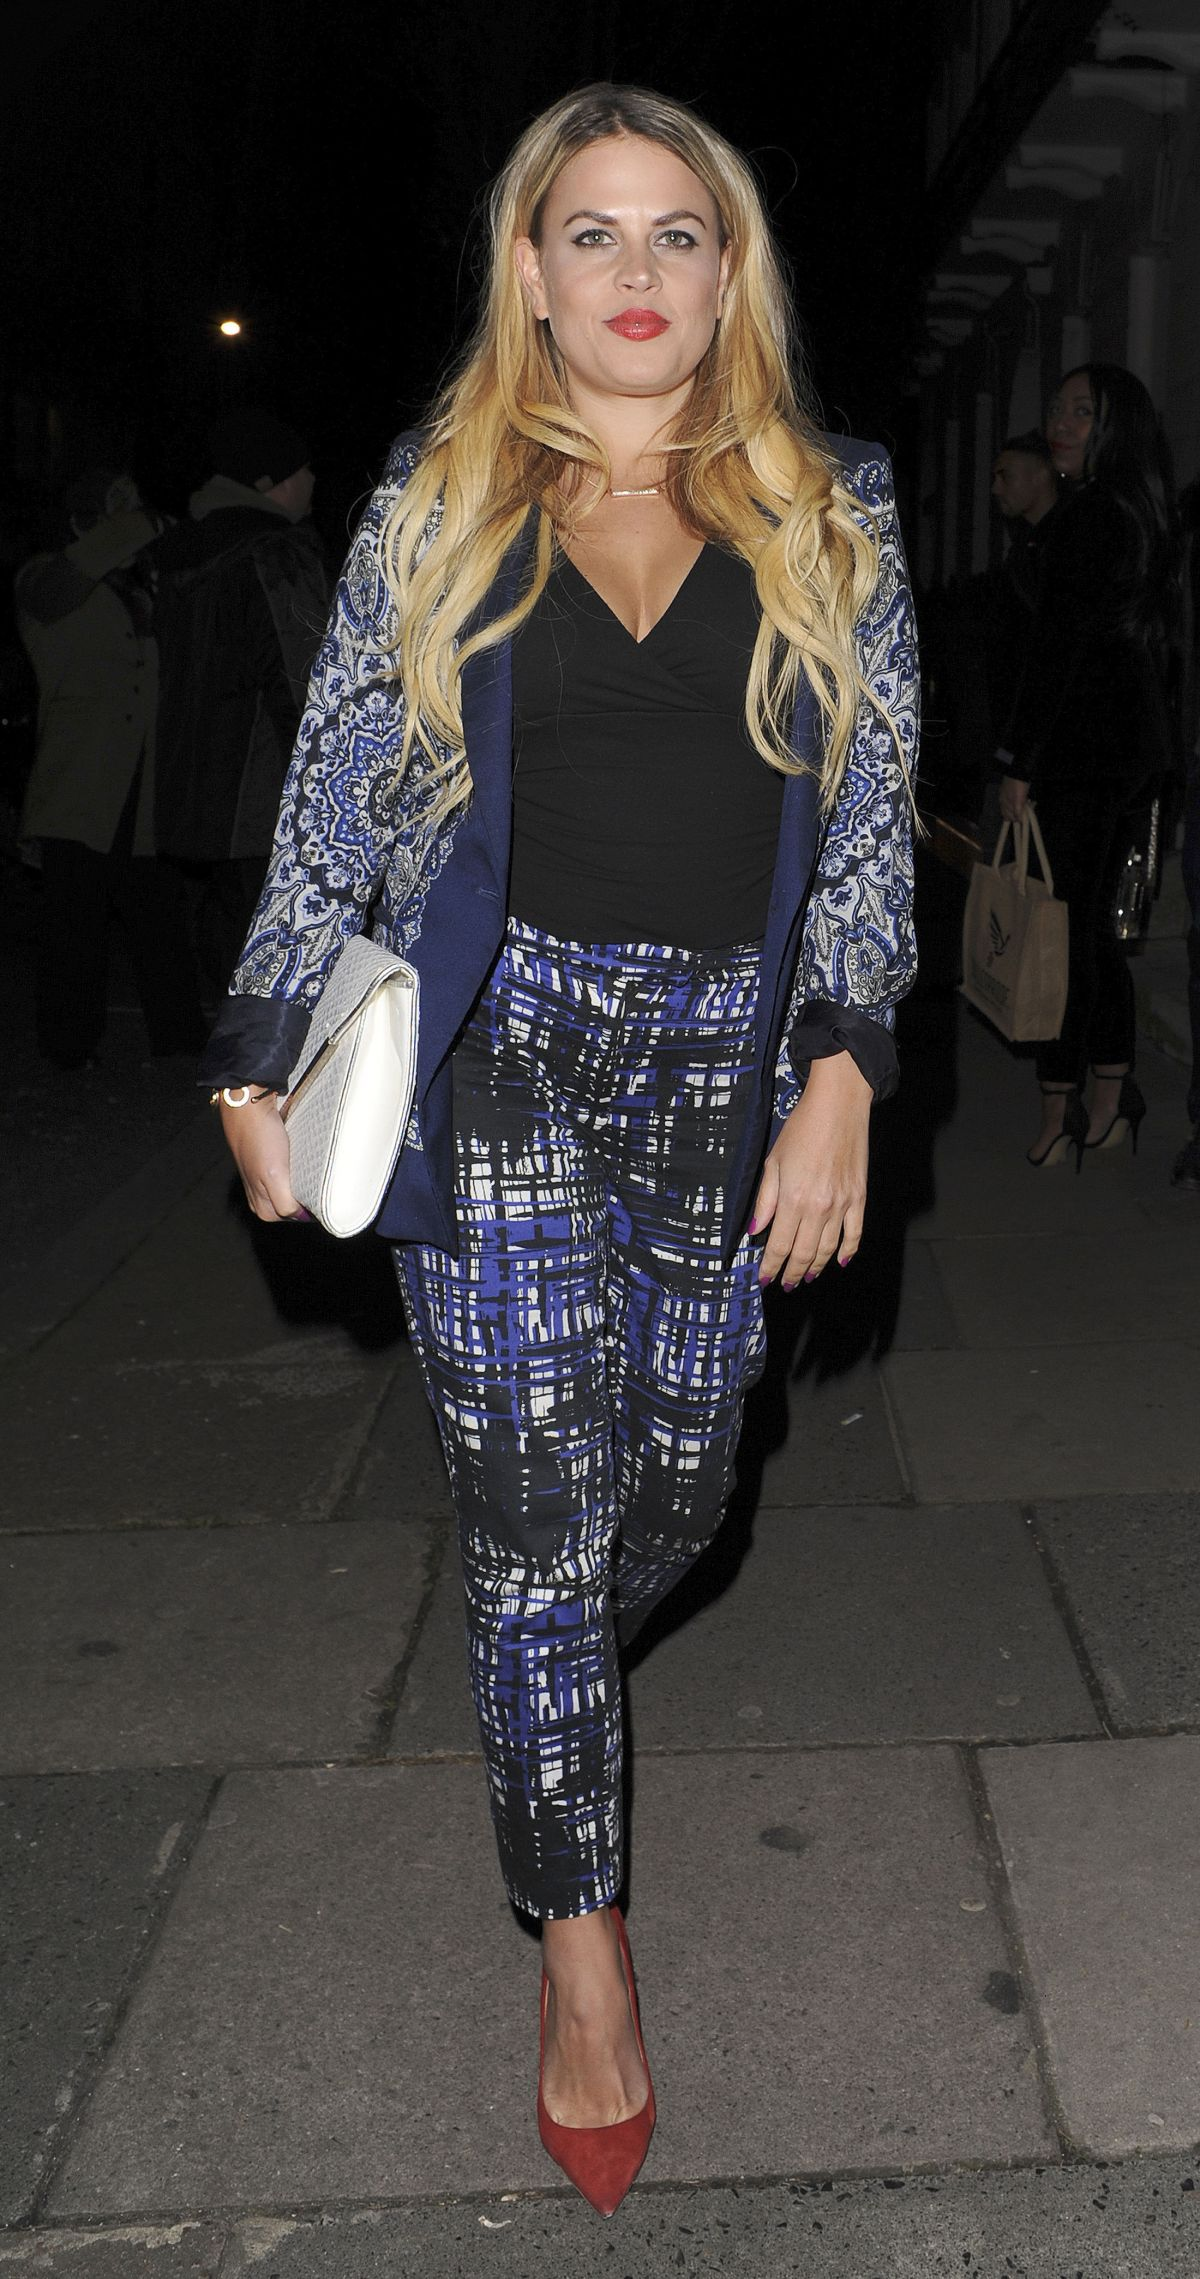 NADIA ESSEX at Launch of Rachel Christie